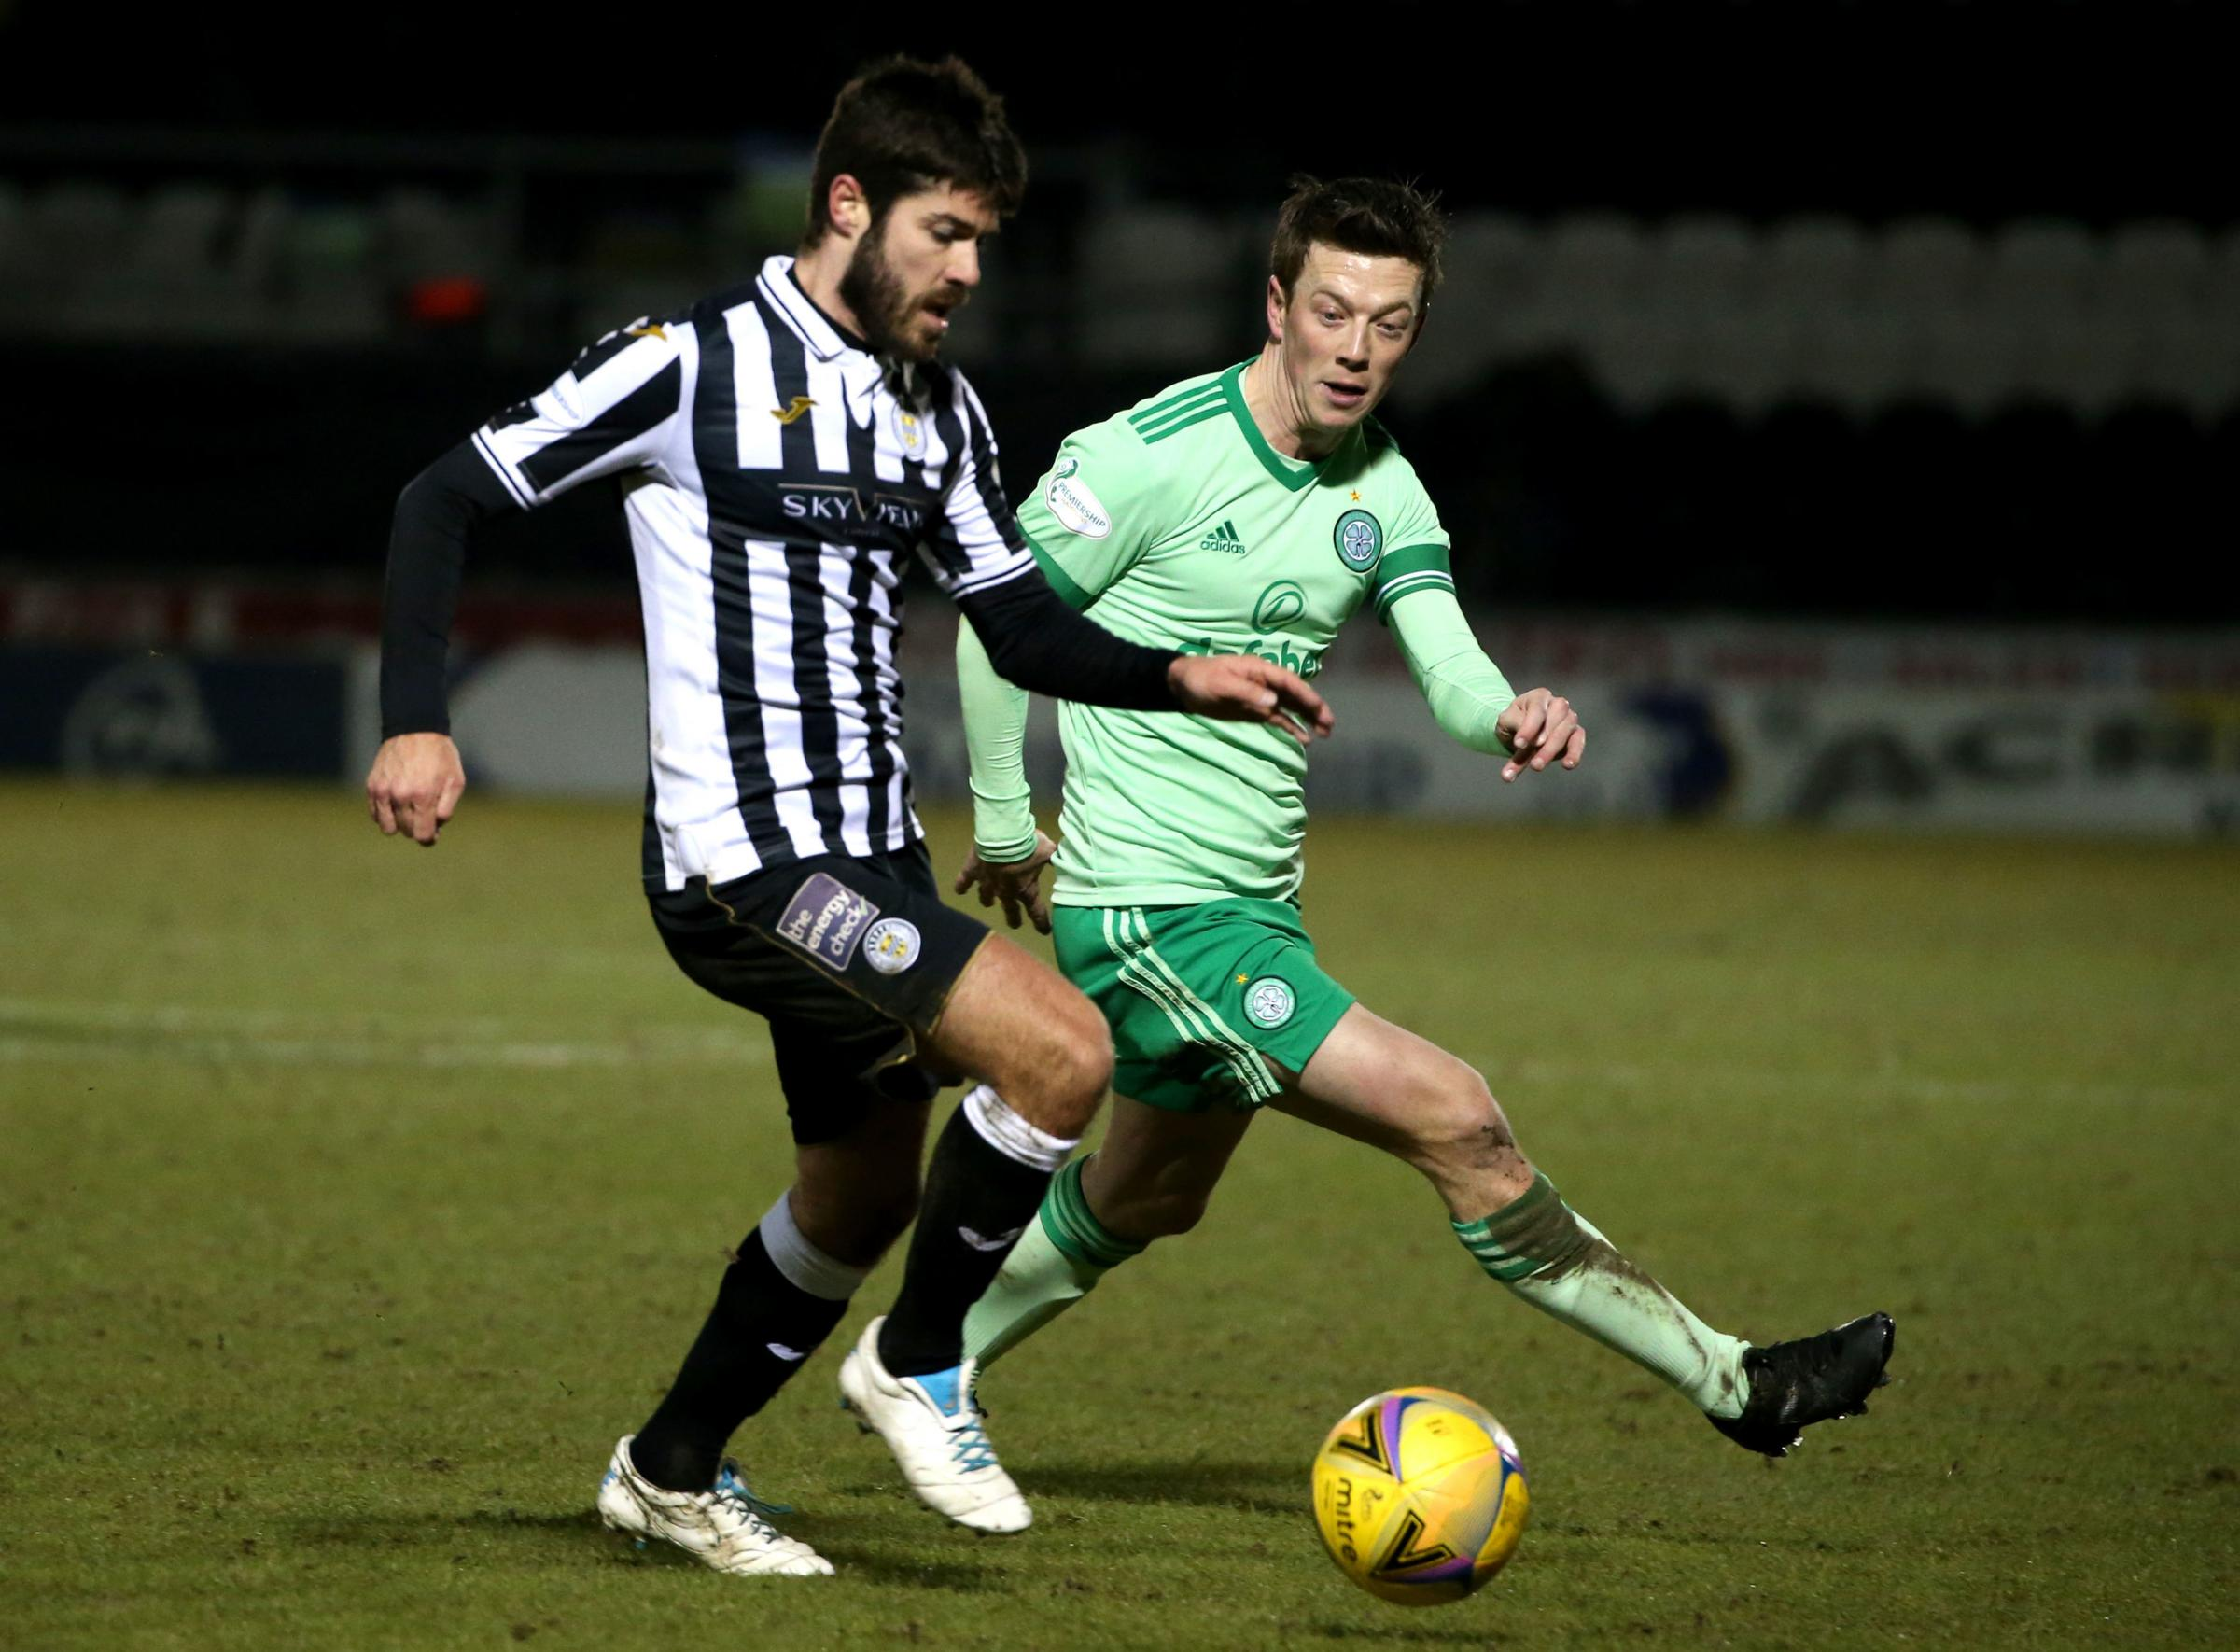 St Mirren 0 Celtic 4: How the St Mirren players rated as Saints turn in poor showing